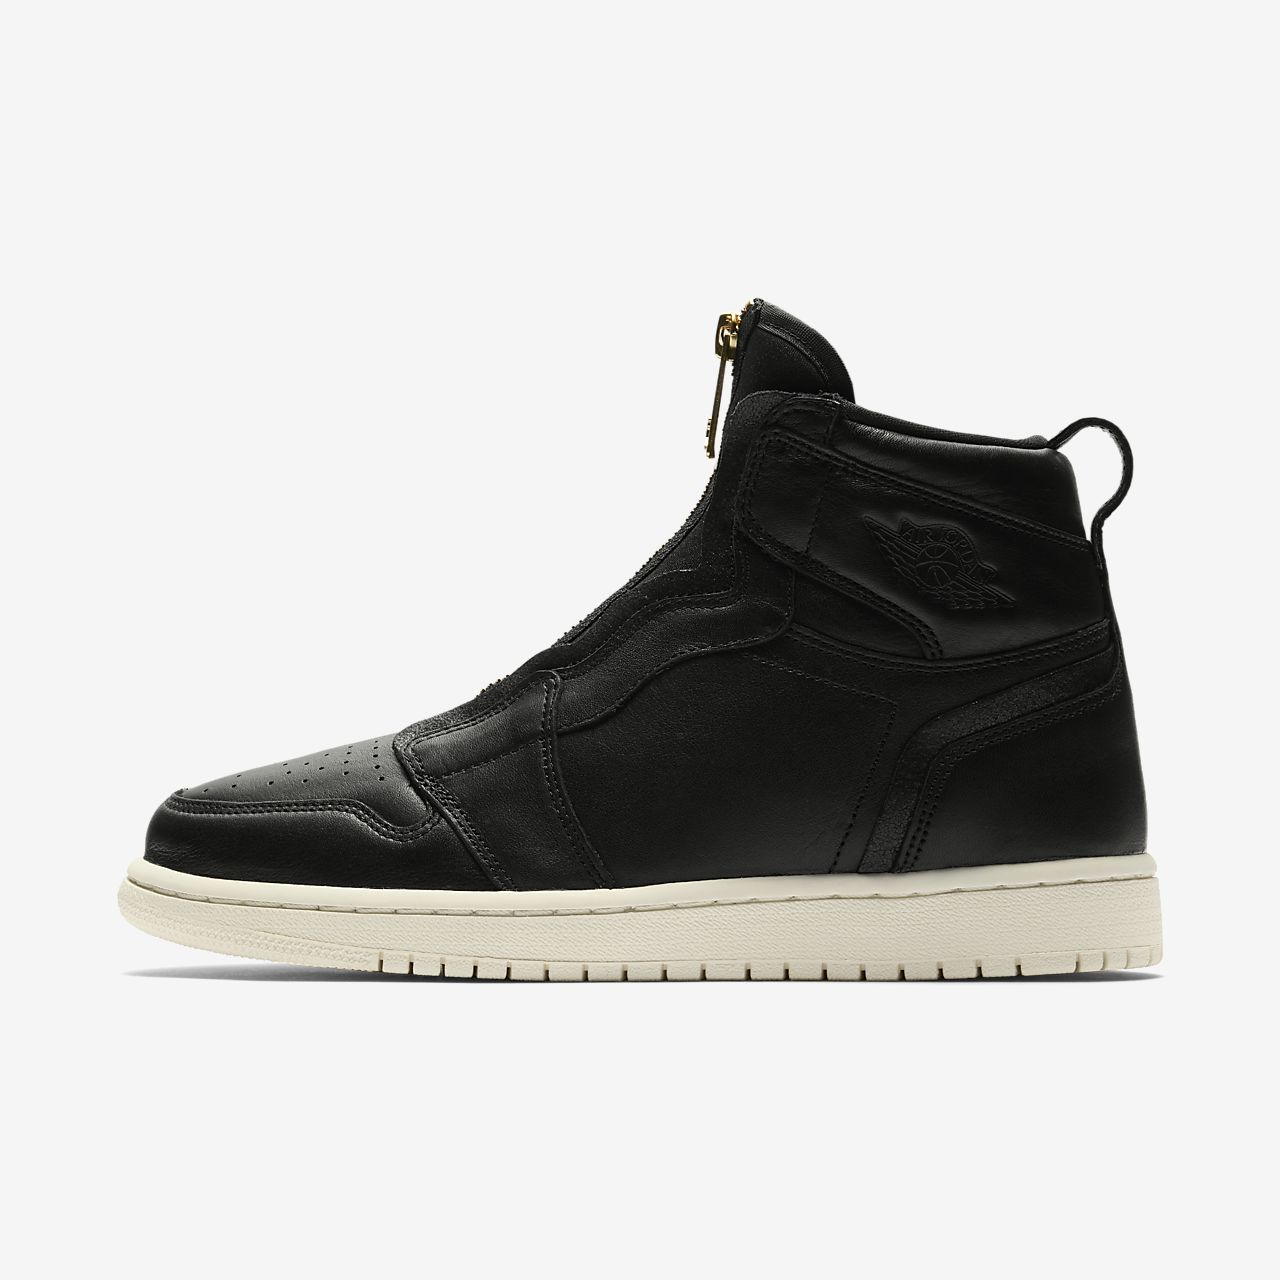 79b6521b834c77 Air Jordan 1 High Zip Women s Shoe. Nike.com